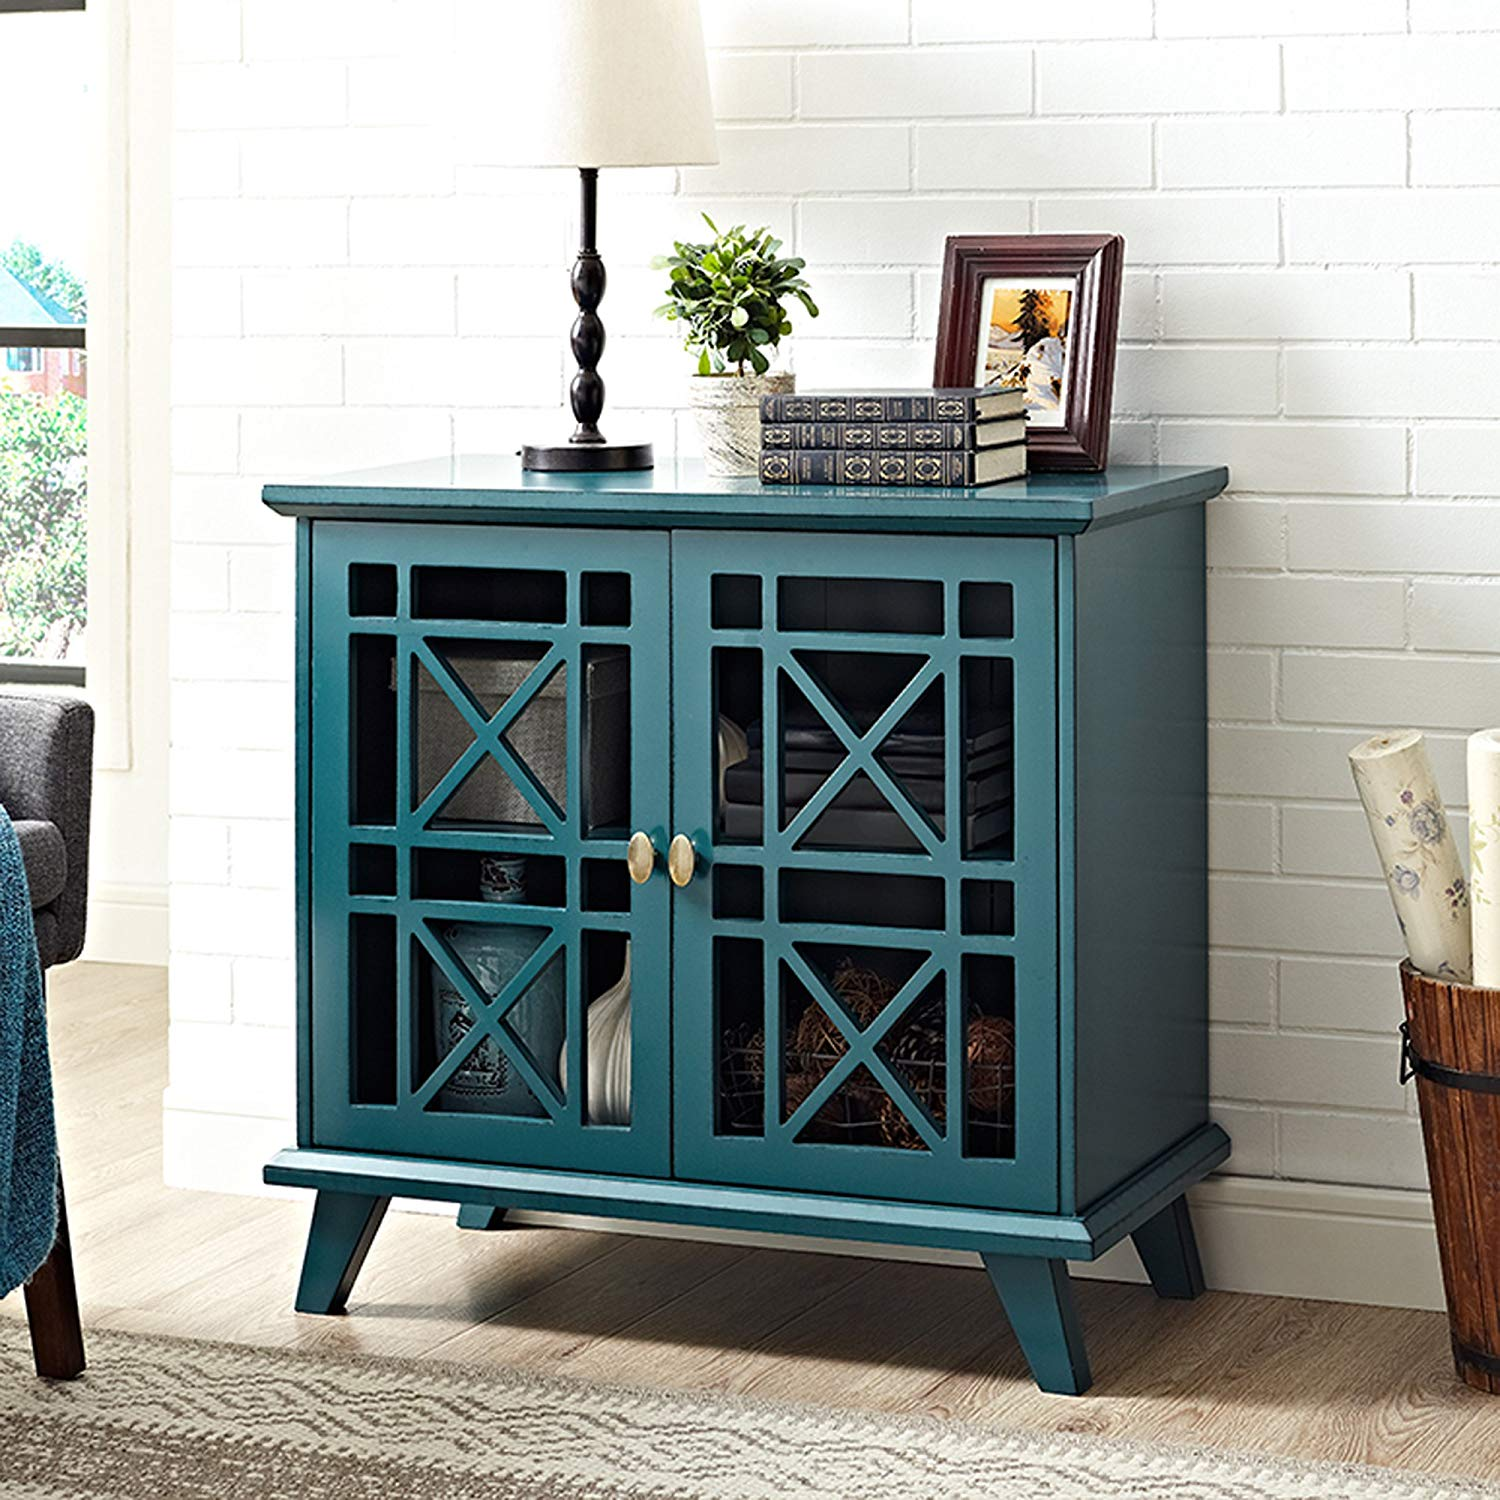 furniture fretwork accent console blue tables kisl table grey geometric rug macys coffee hand painted corner study desk silver sofa magazine side white tray target bronze rain